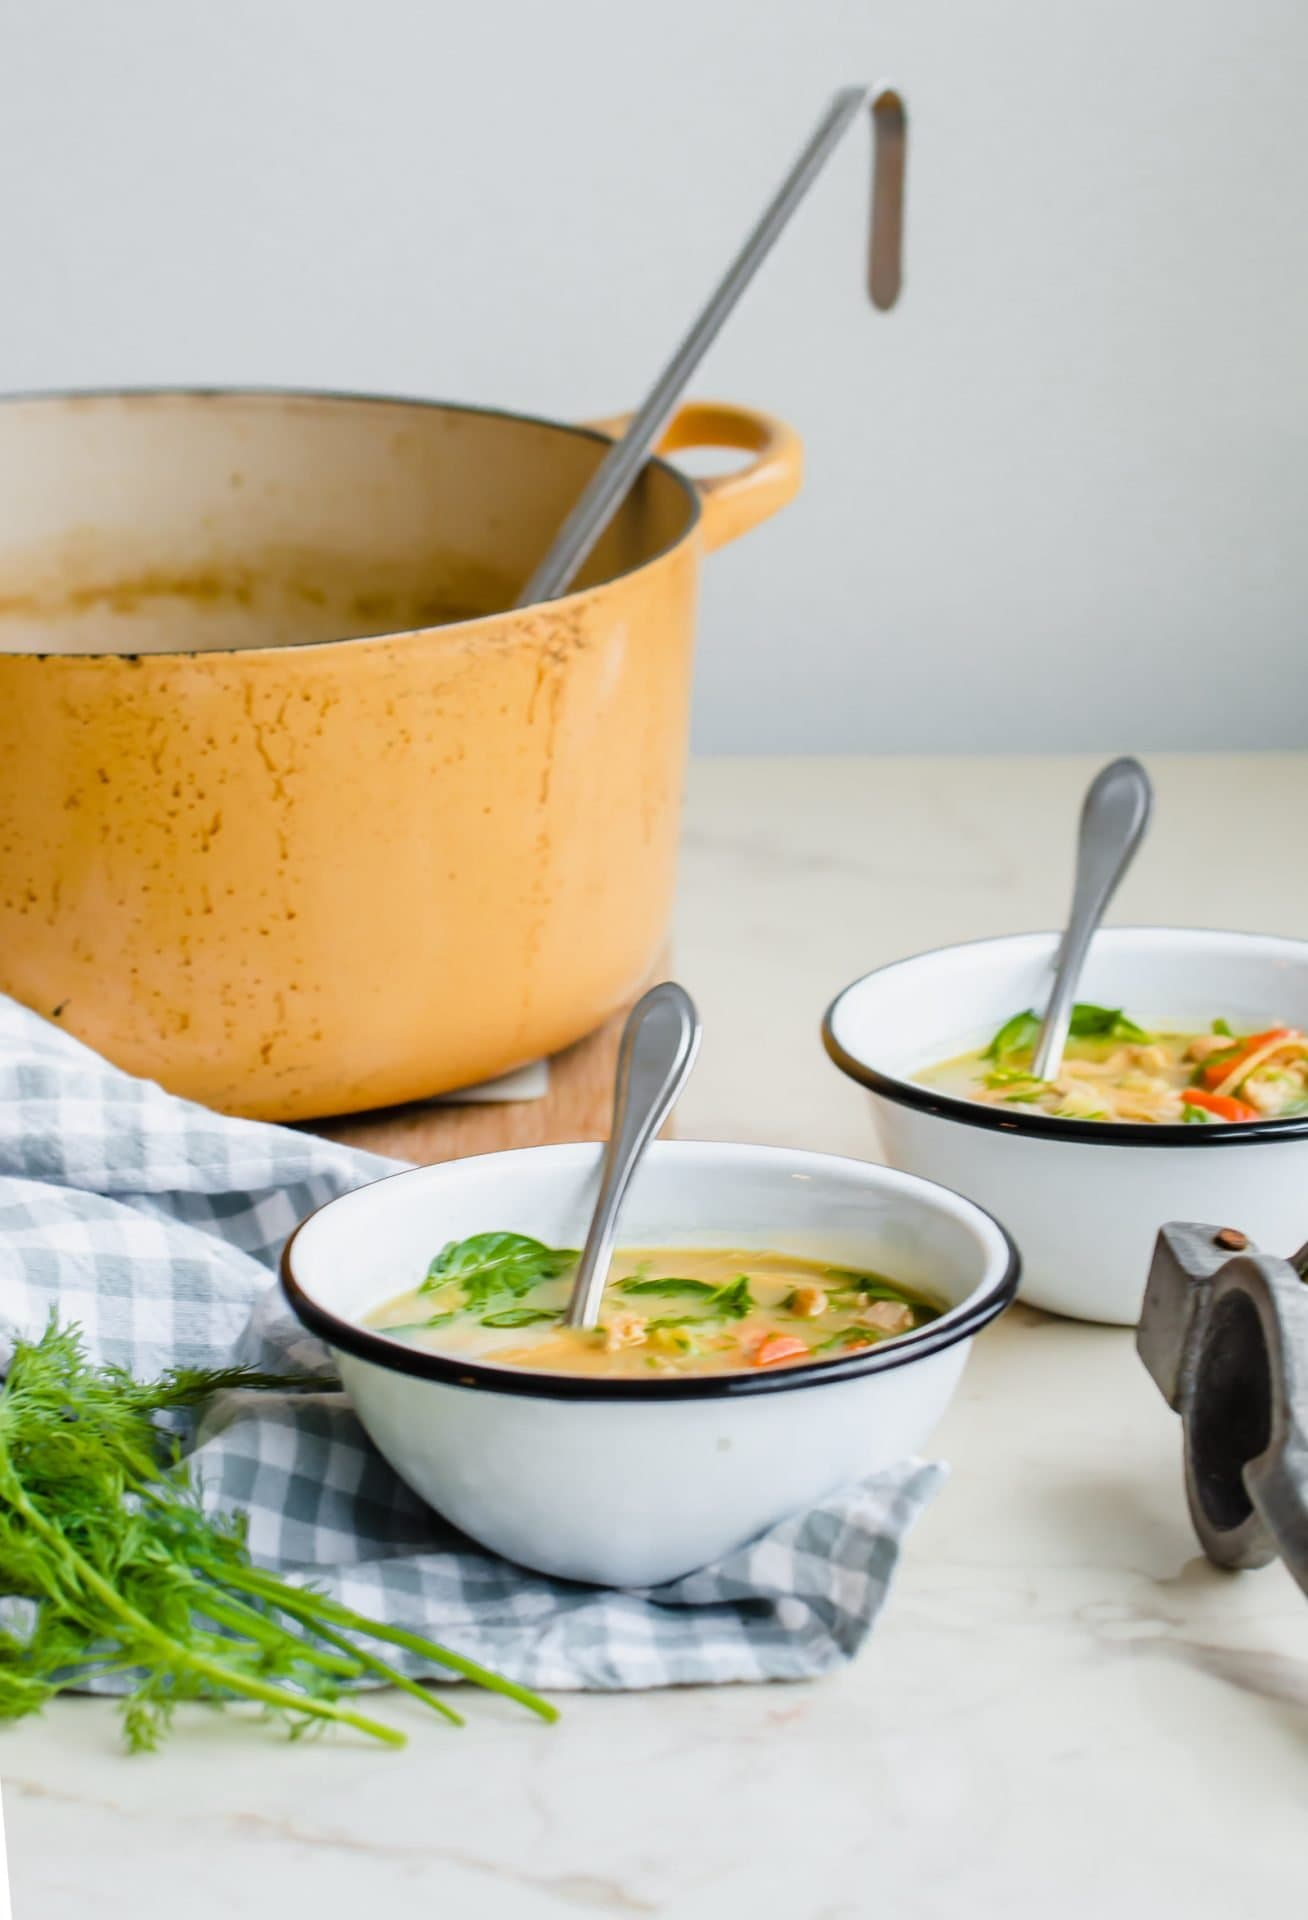 Two white enamel bowls filled with lemon chicken soup next to a pot of soup on the side.